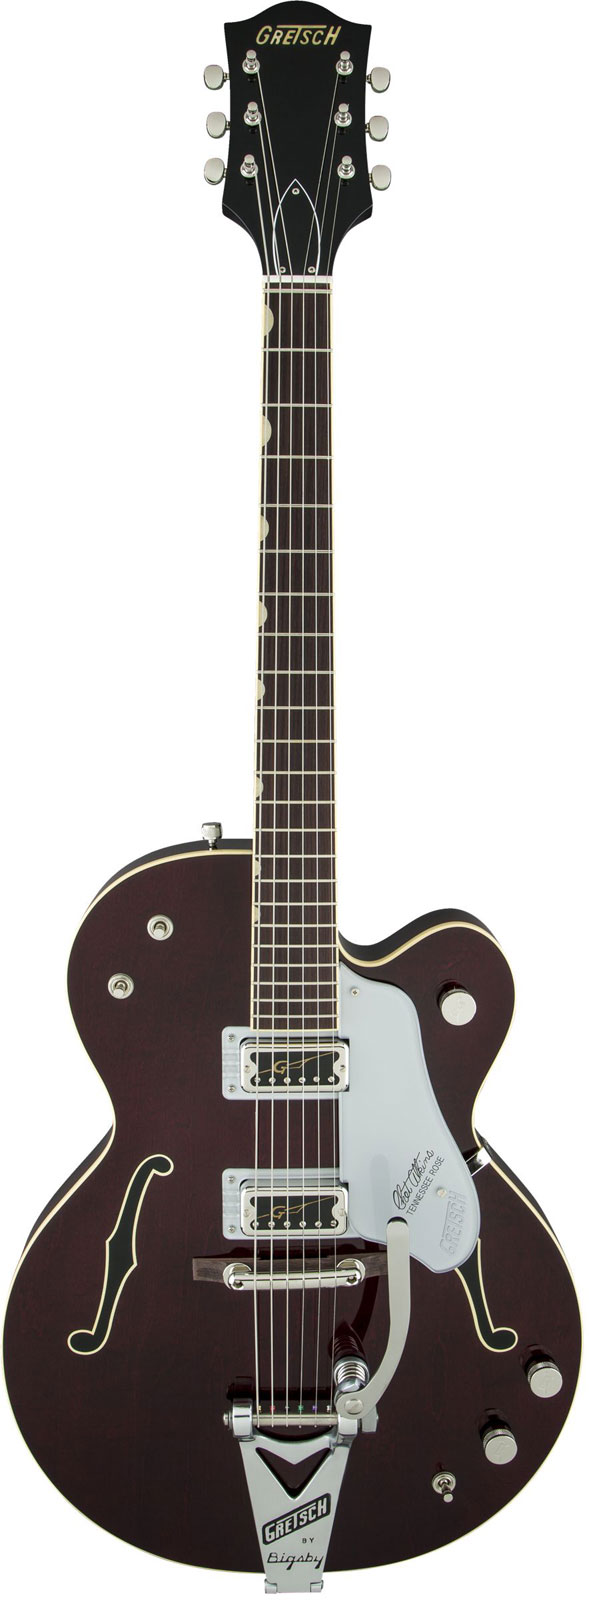 Gretsch G6119t-62ge Golden Era Tennessee Rose Bigsby Dark Cherry Stain + Etui